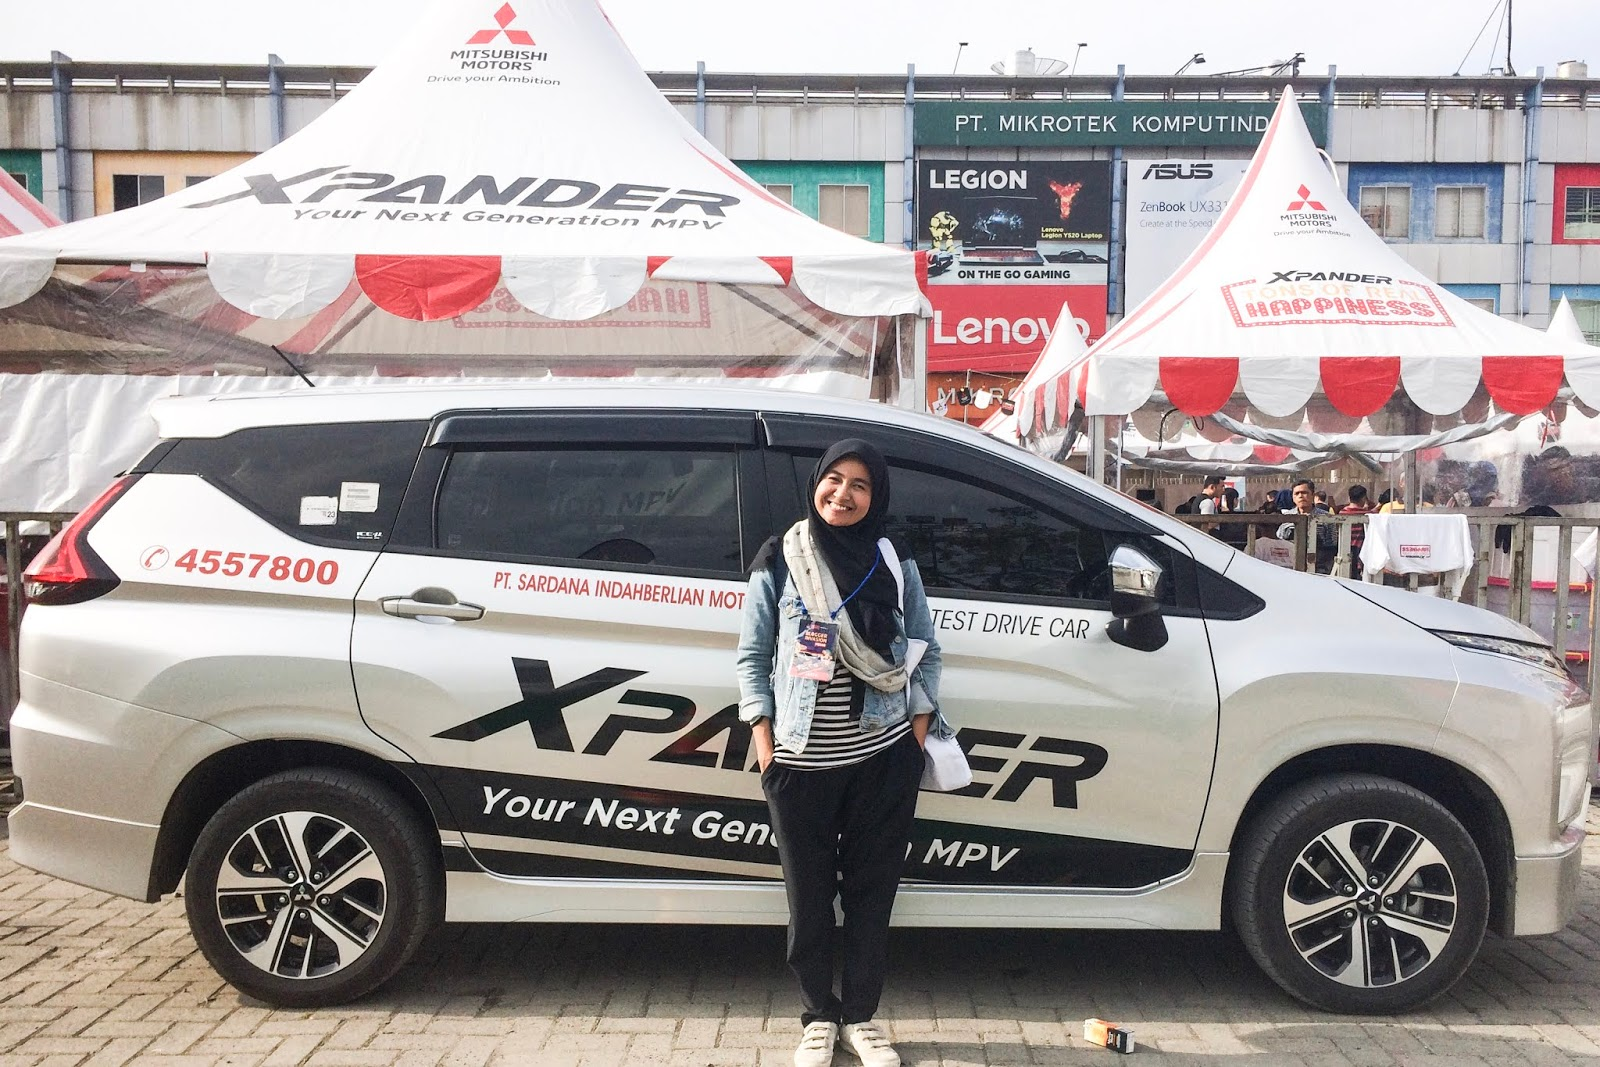 mitsubishi-xpander-tons-of-real-happiness-natrarahmani